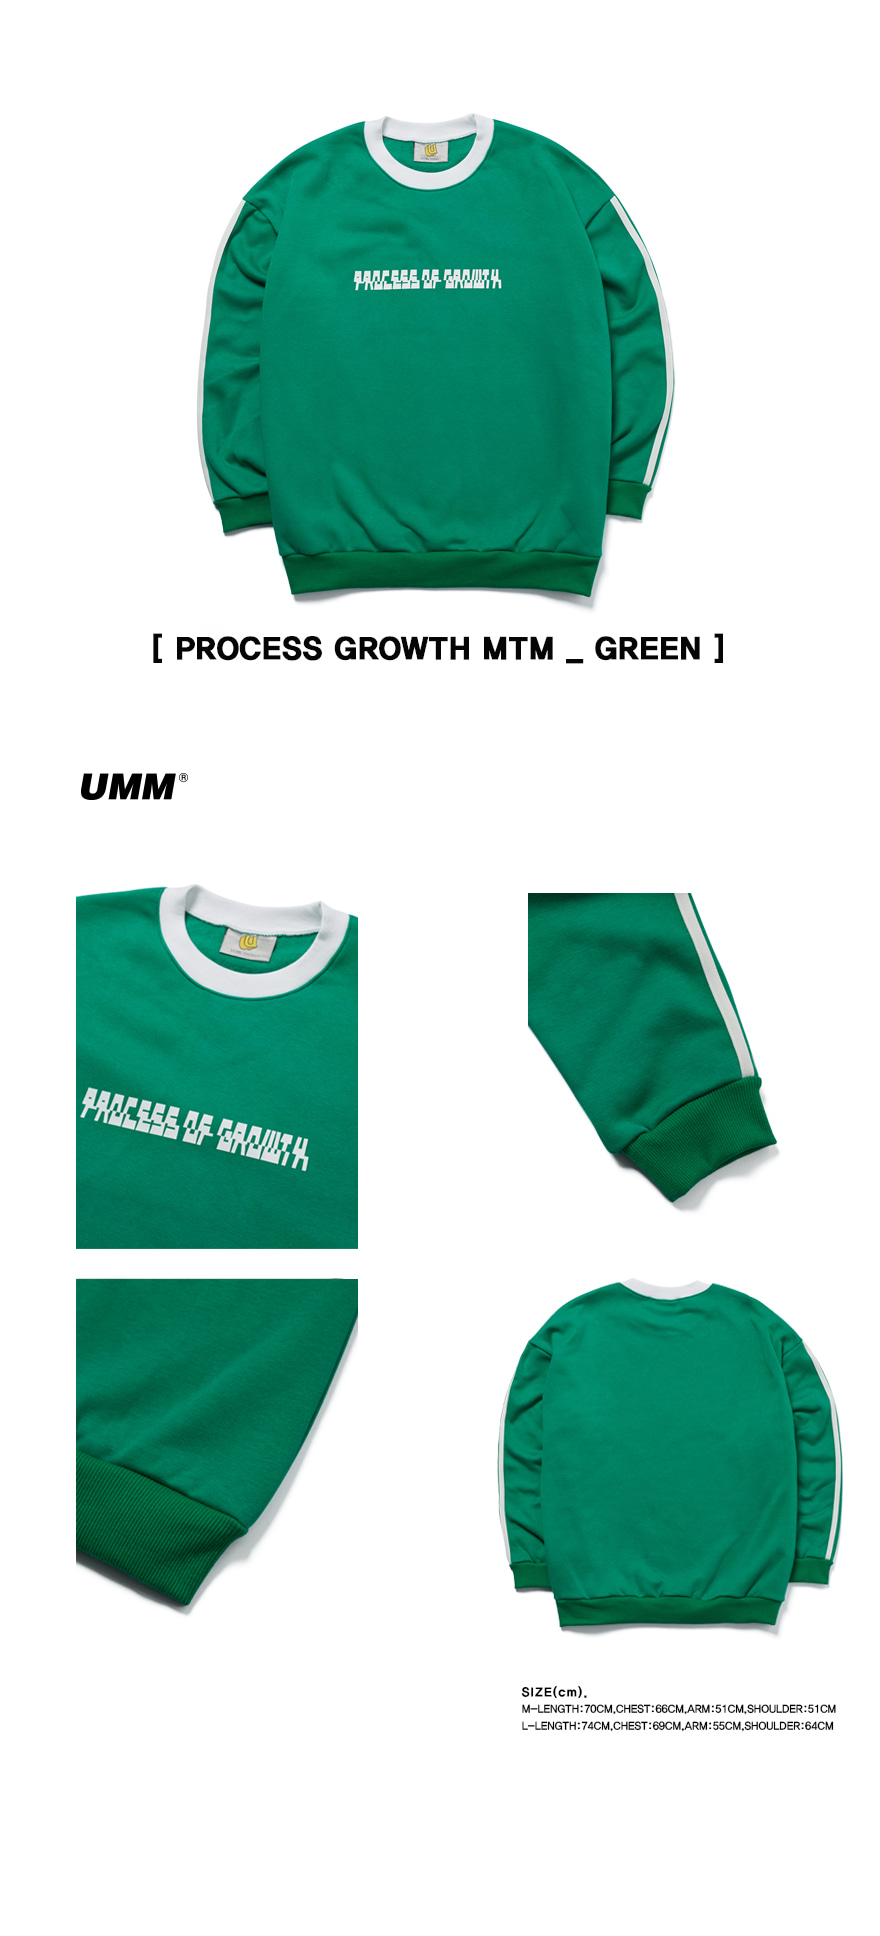 PROCESS-GROWTH-MTM-_-GREEN.jpg